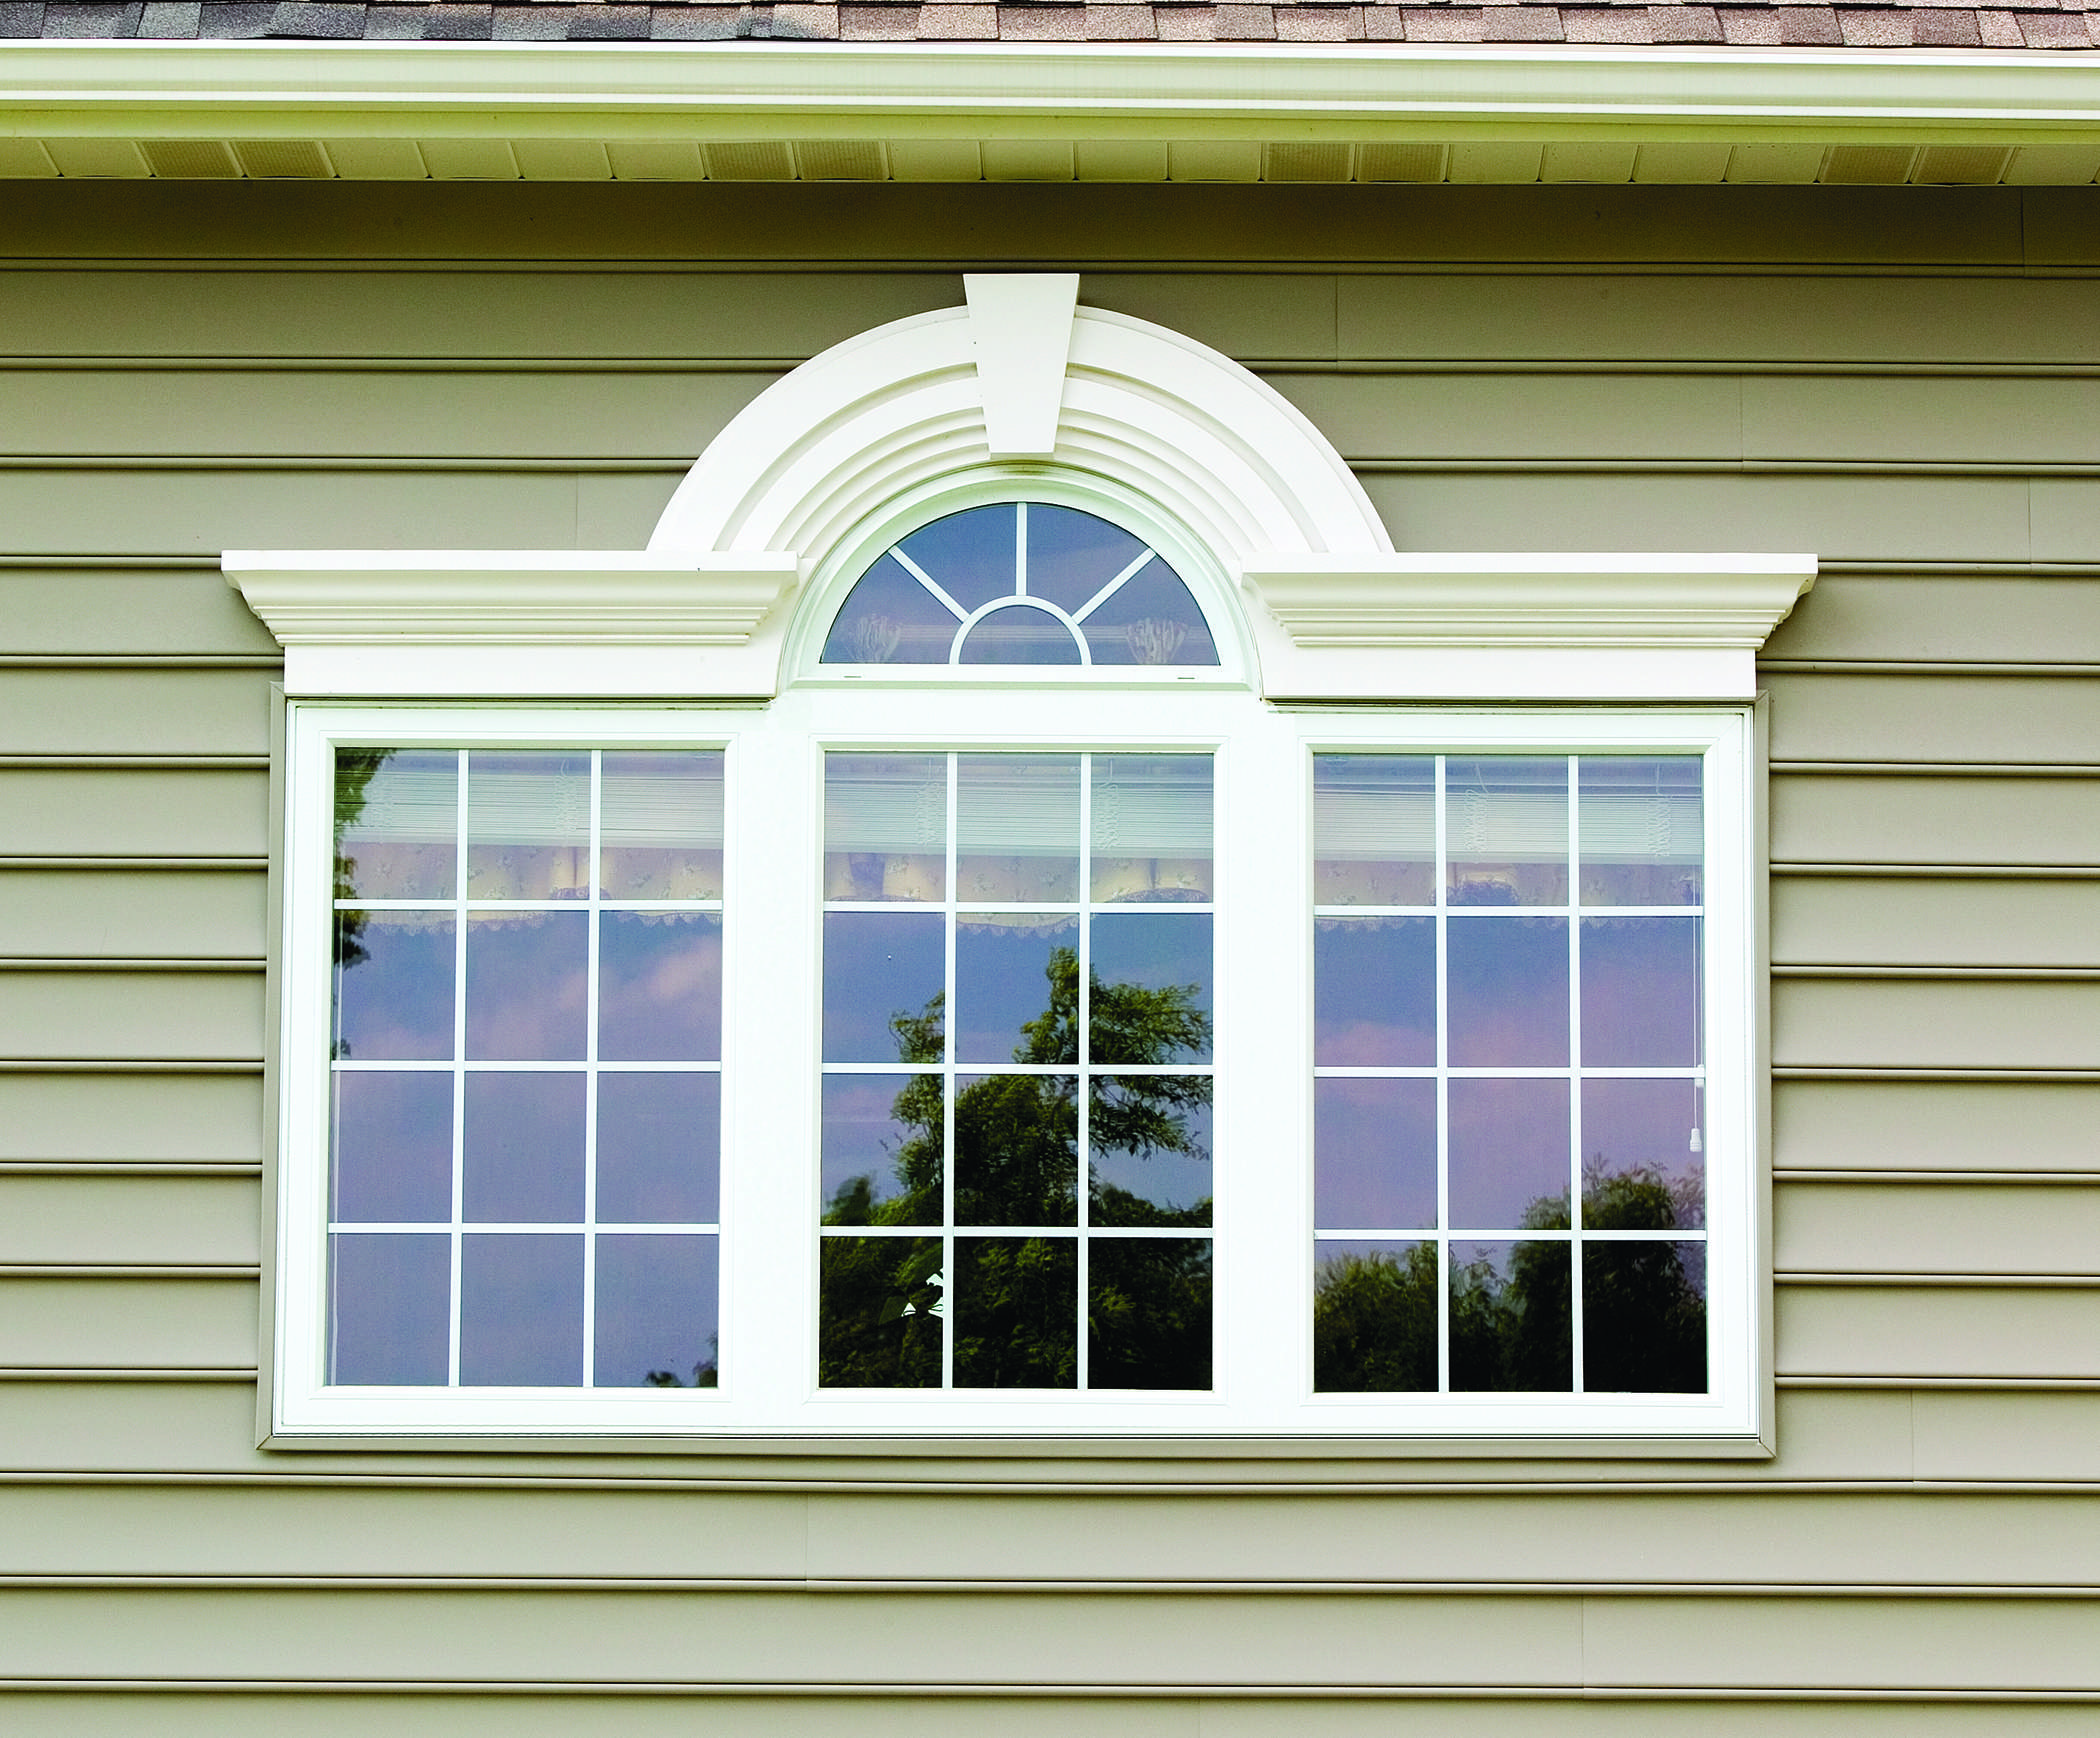 Khaki siding with a white window